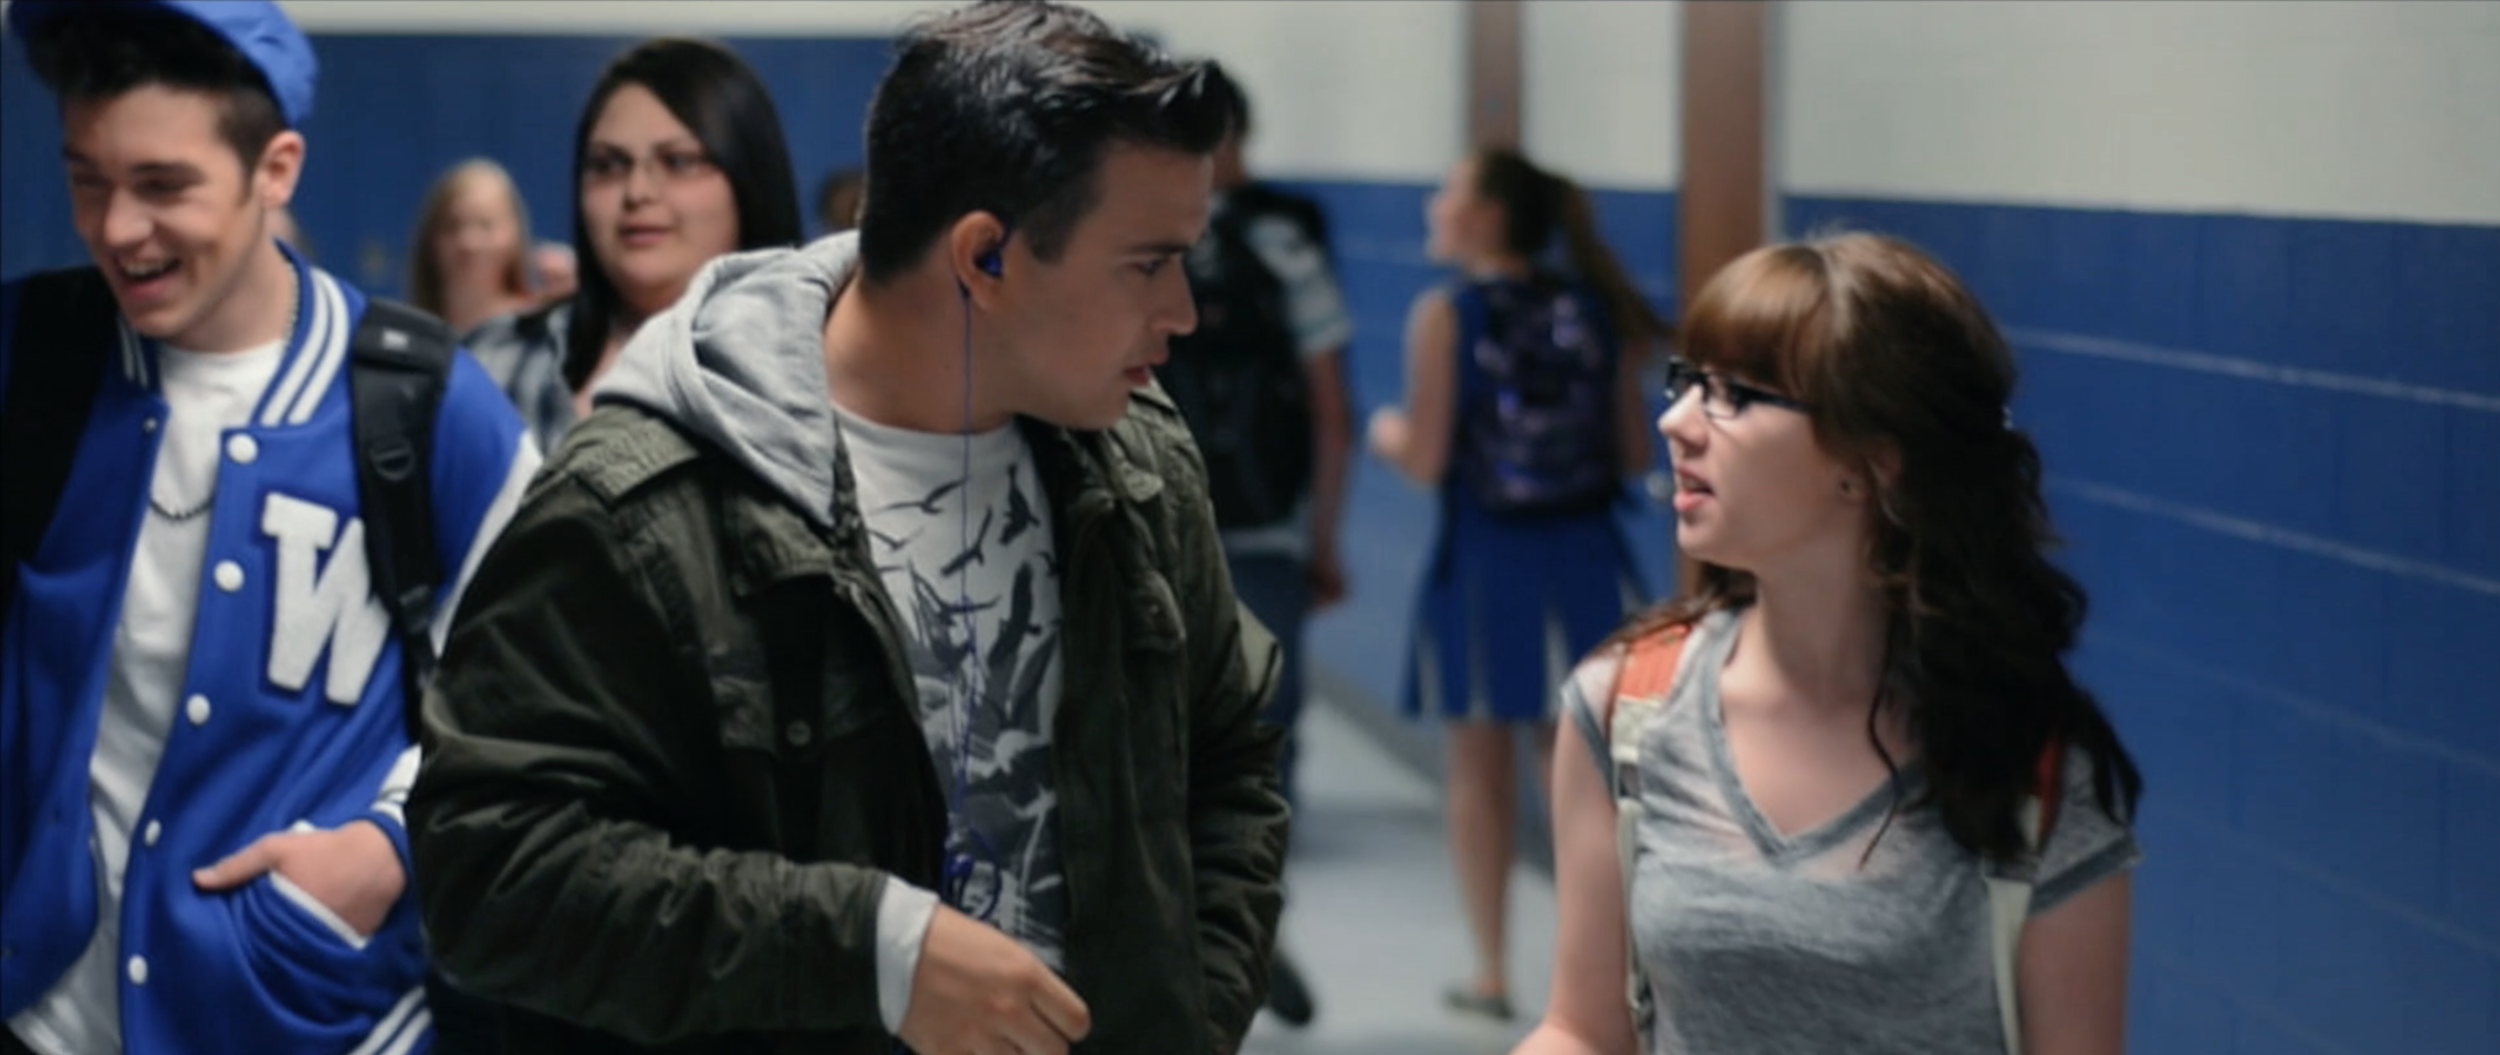 Eli Johnson (Nick Earl) and long time best friend Mackenzie Dover (Dani Matelske) in the halls of William Moore High in  Sincerely, Me .